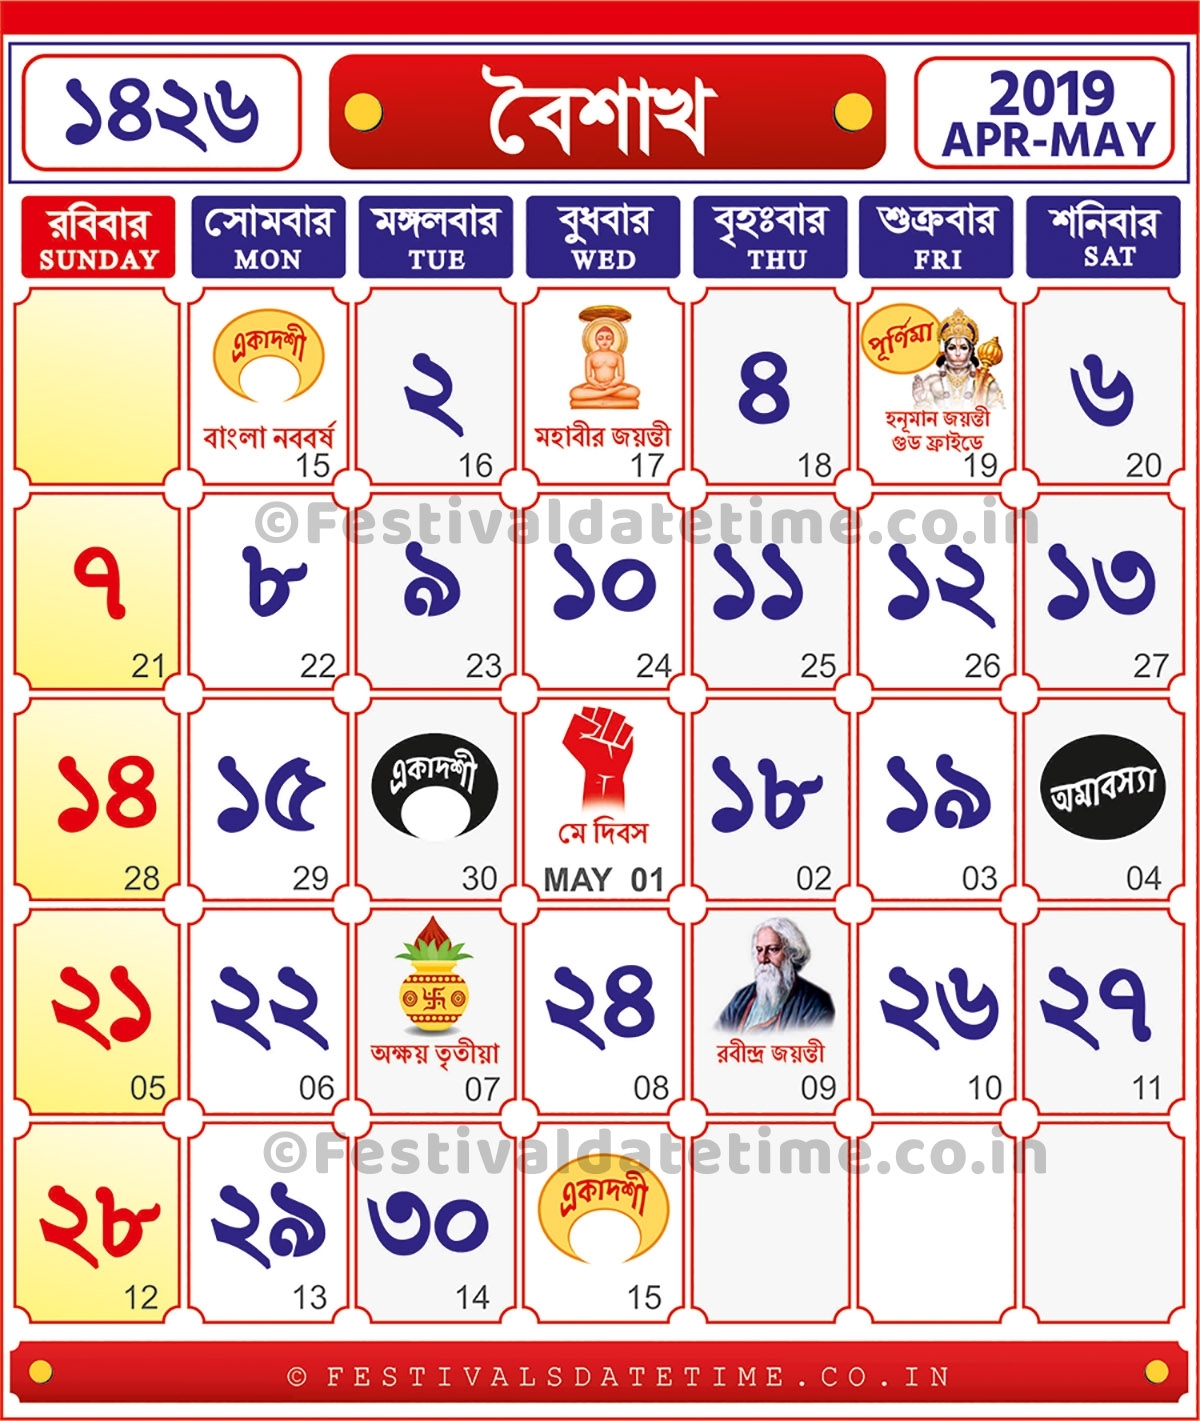 1426 Baisakh : 1426 Bengali Calendar, Bengali Calendar 2019-2020 intended for Bengali Calander Pic This Year Free Pic Downlode